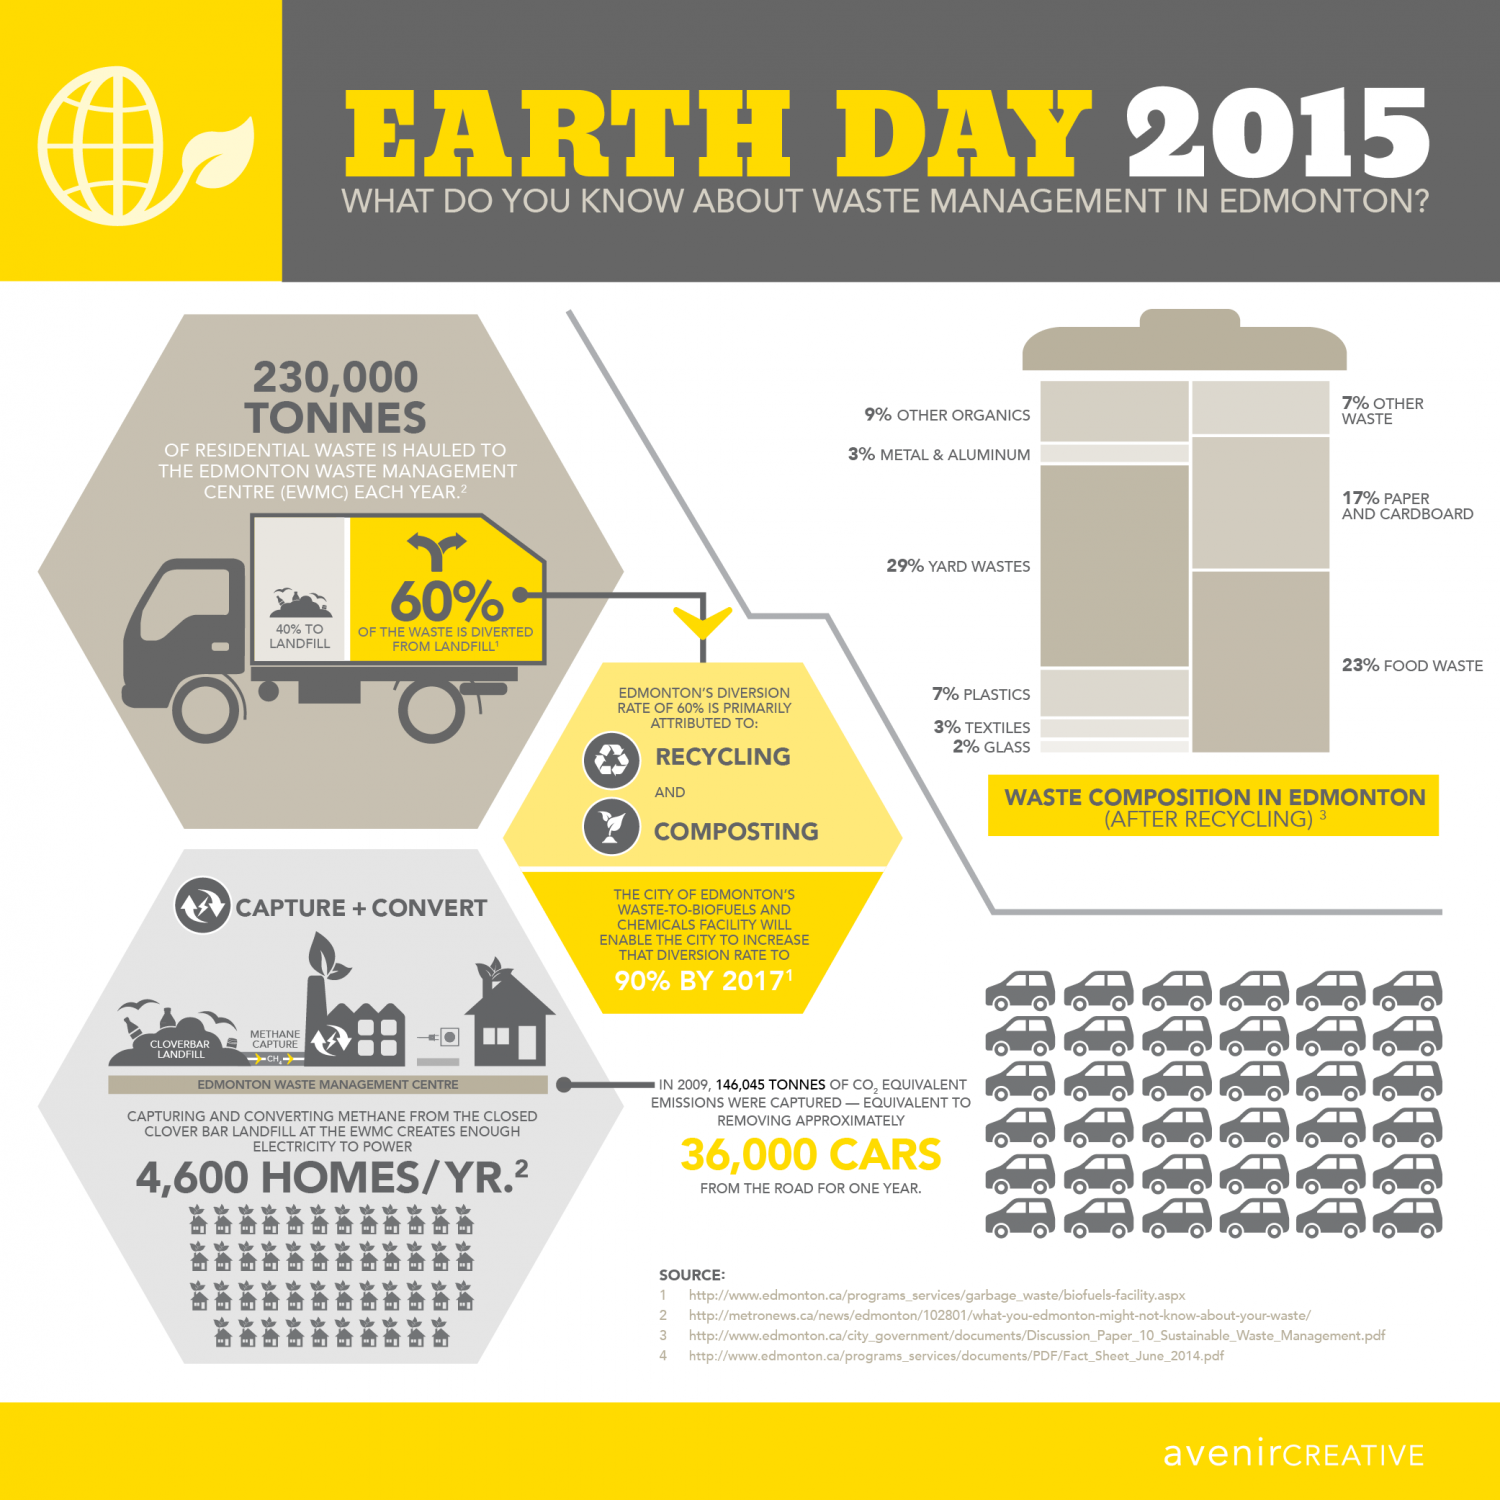 Earth Day 2015 - Waste Management in Edmonton Infographic